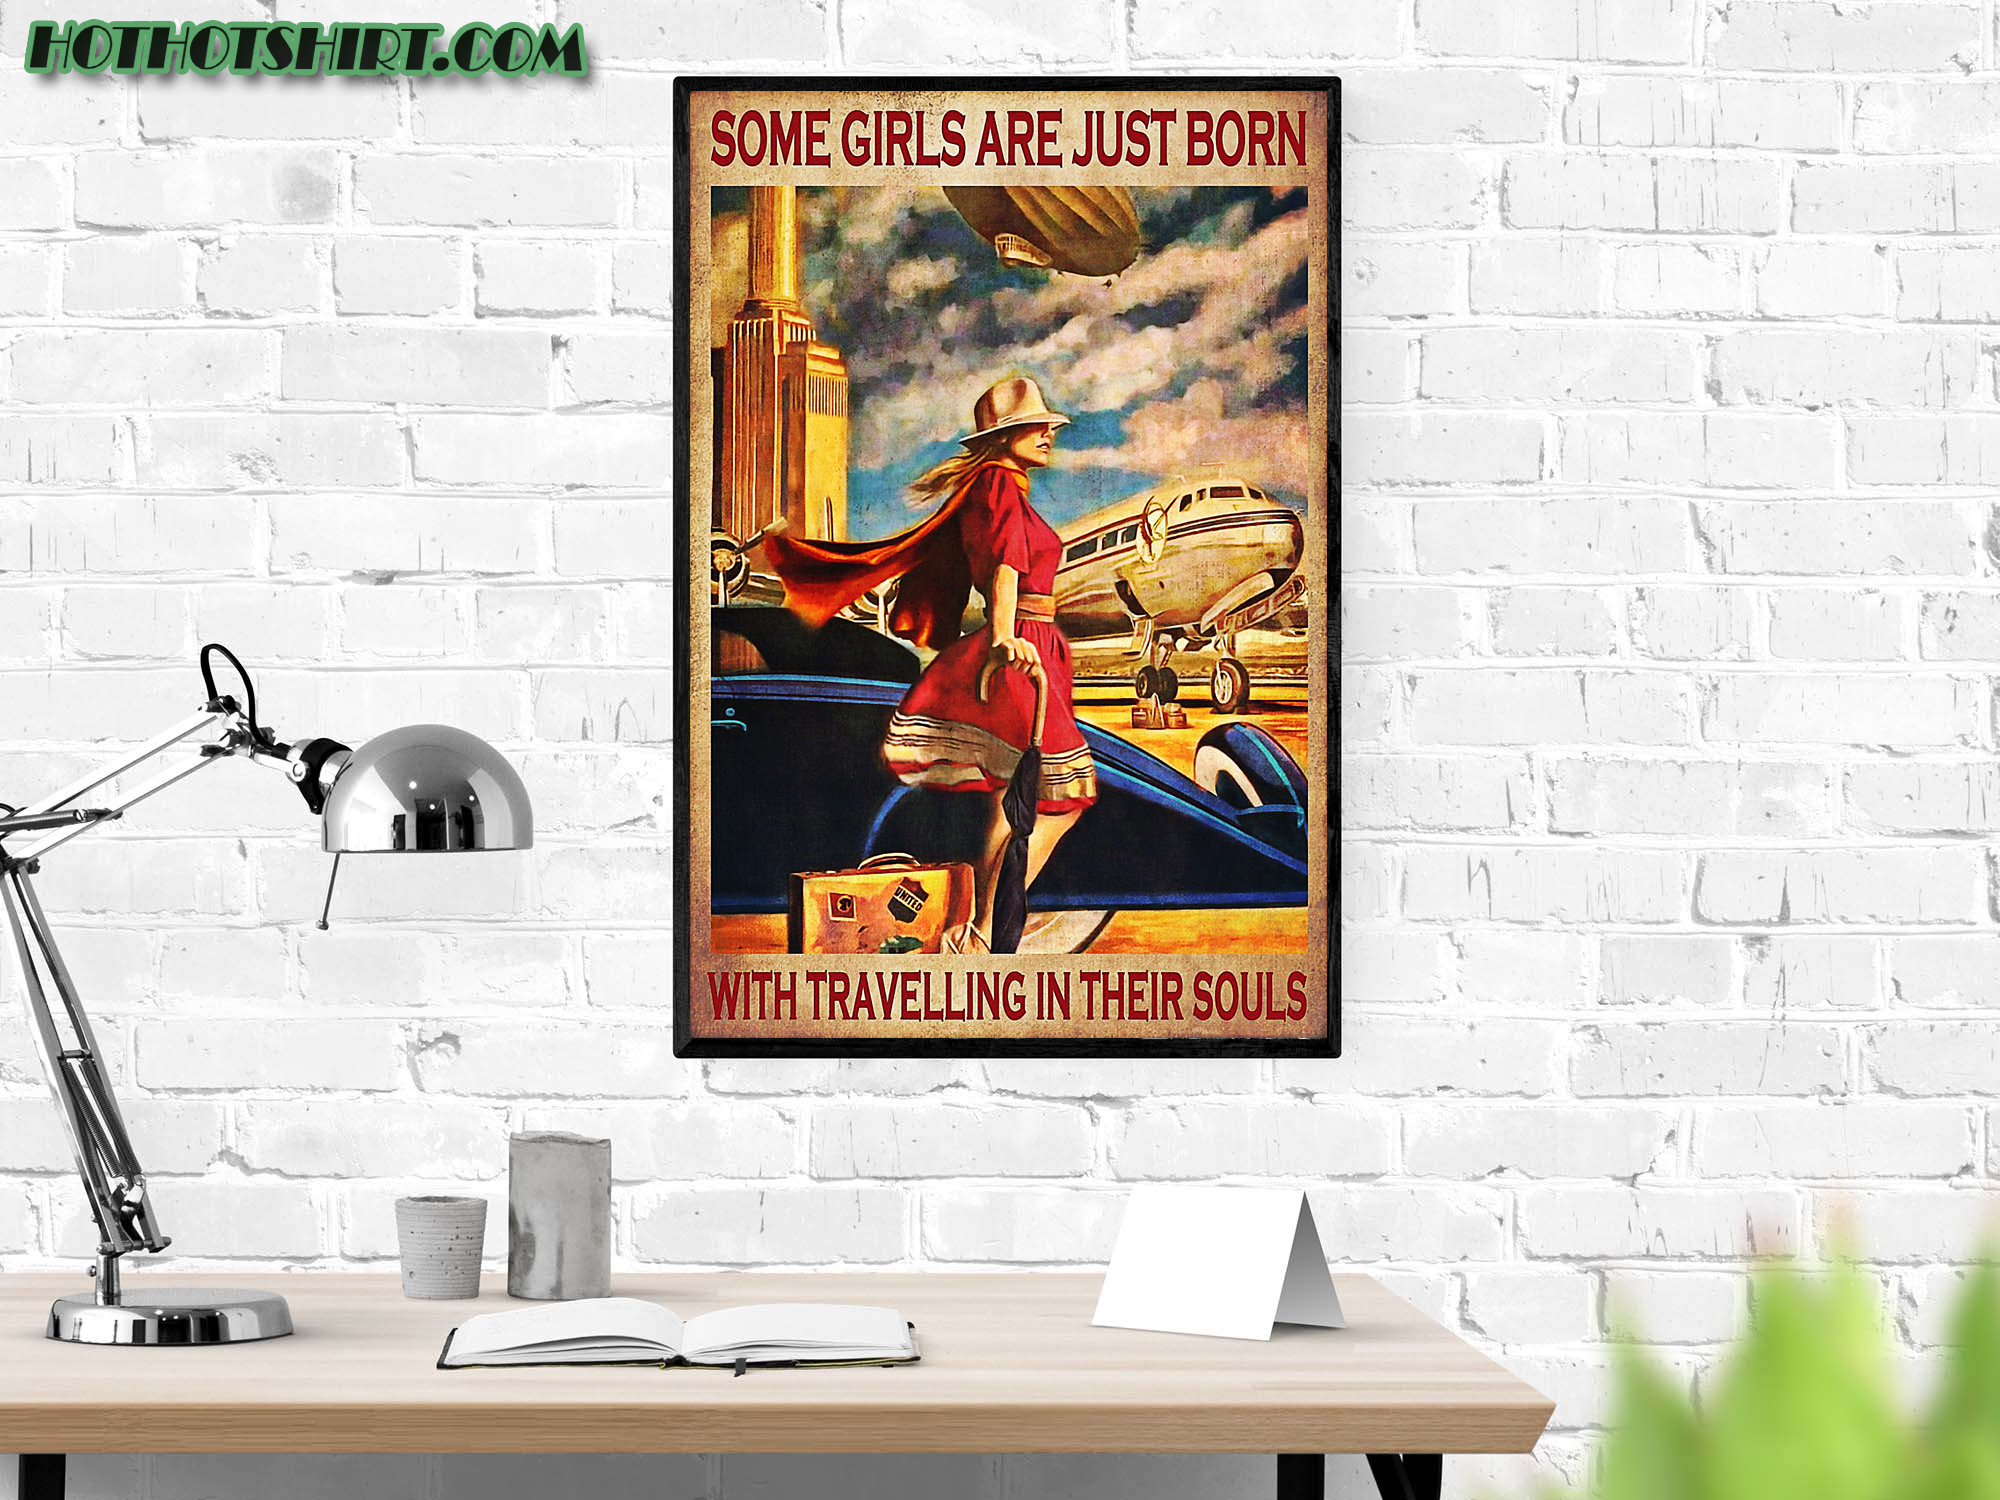 Some girls are just born with travelling in their souls poster 2